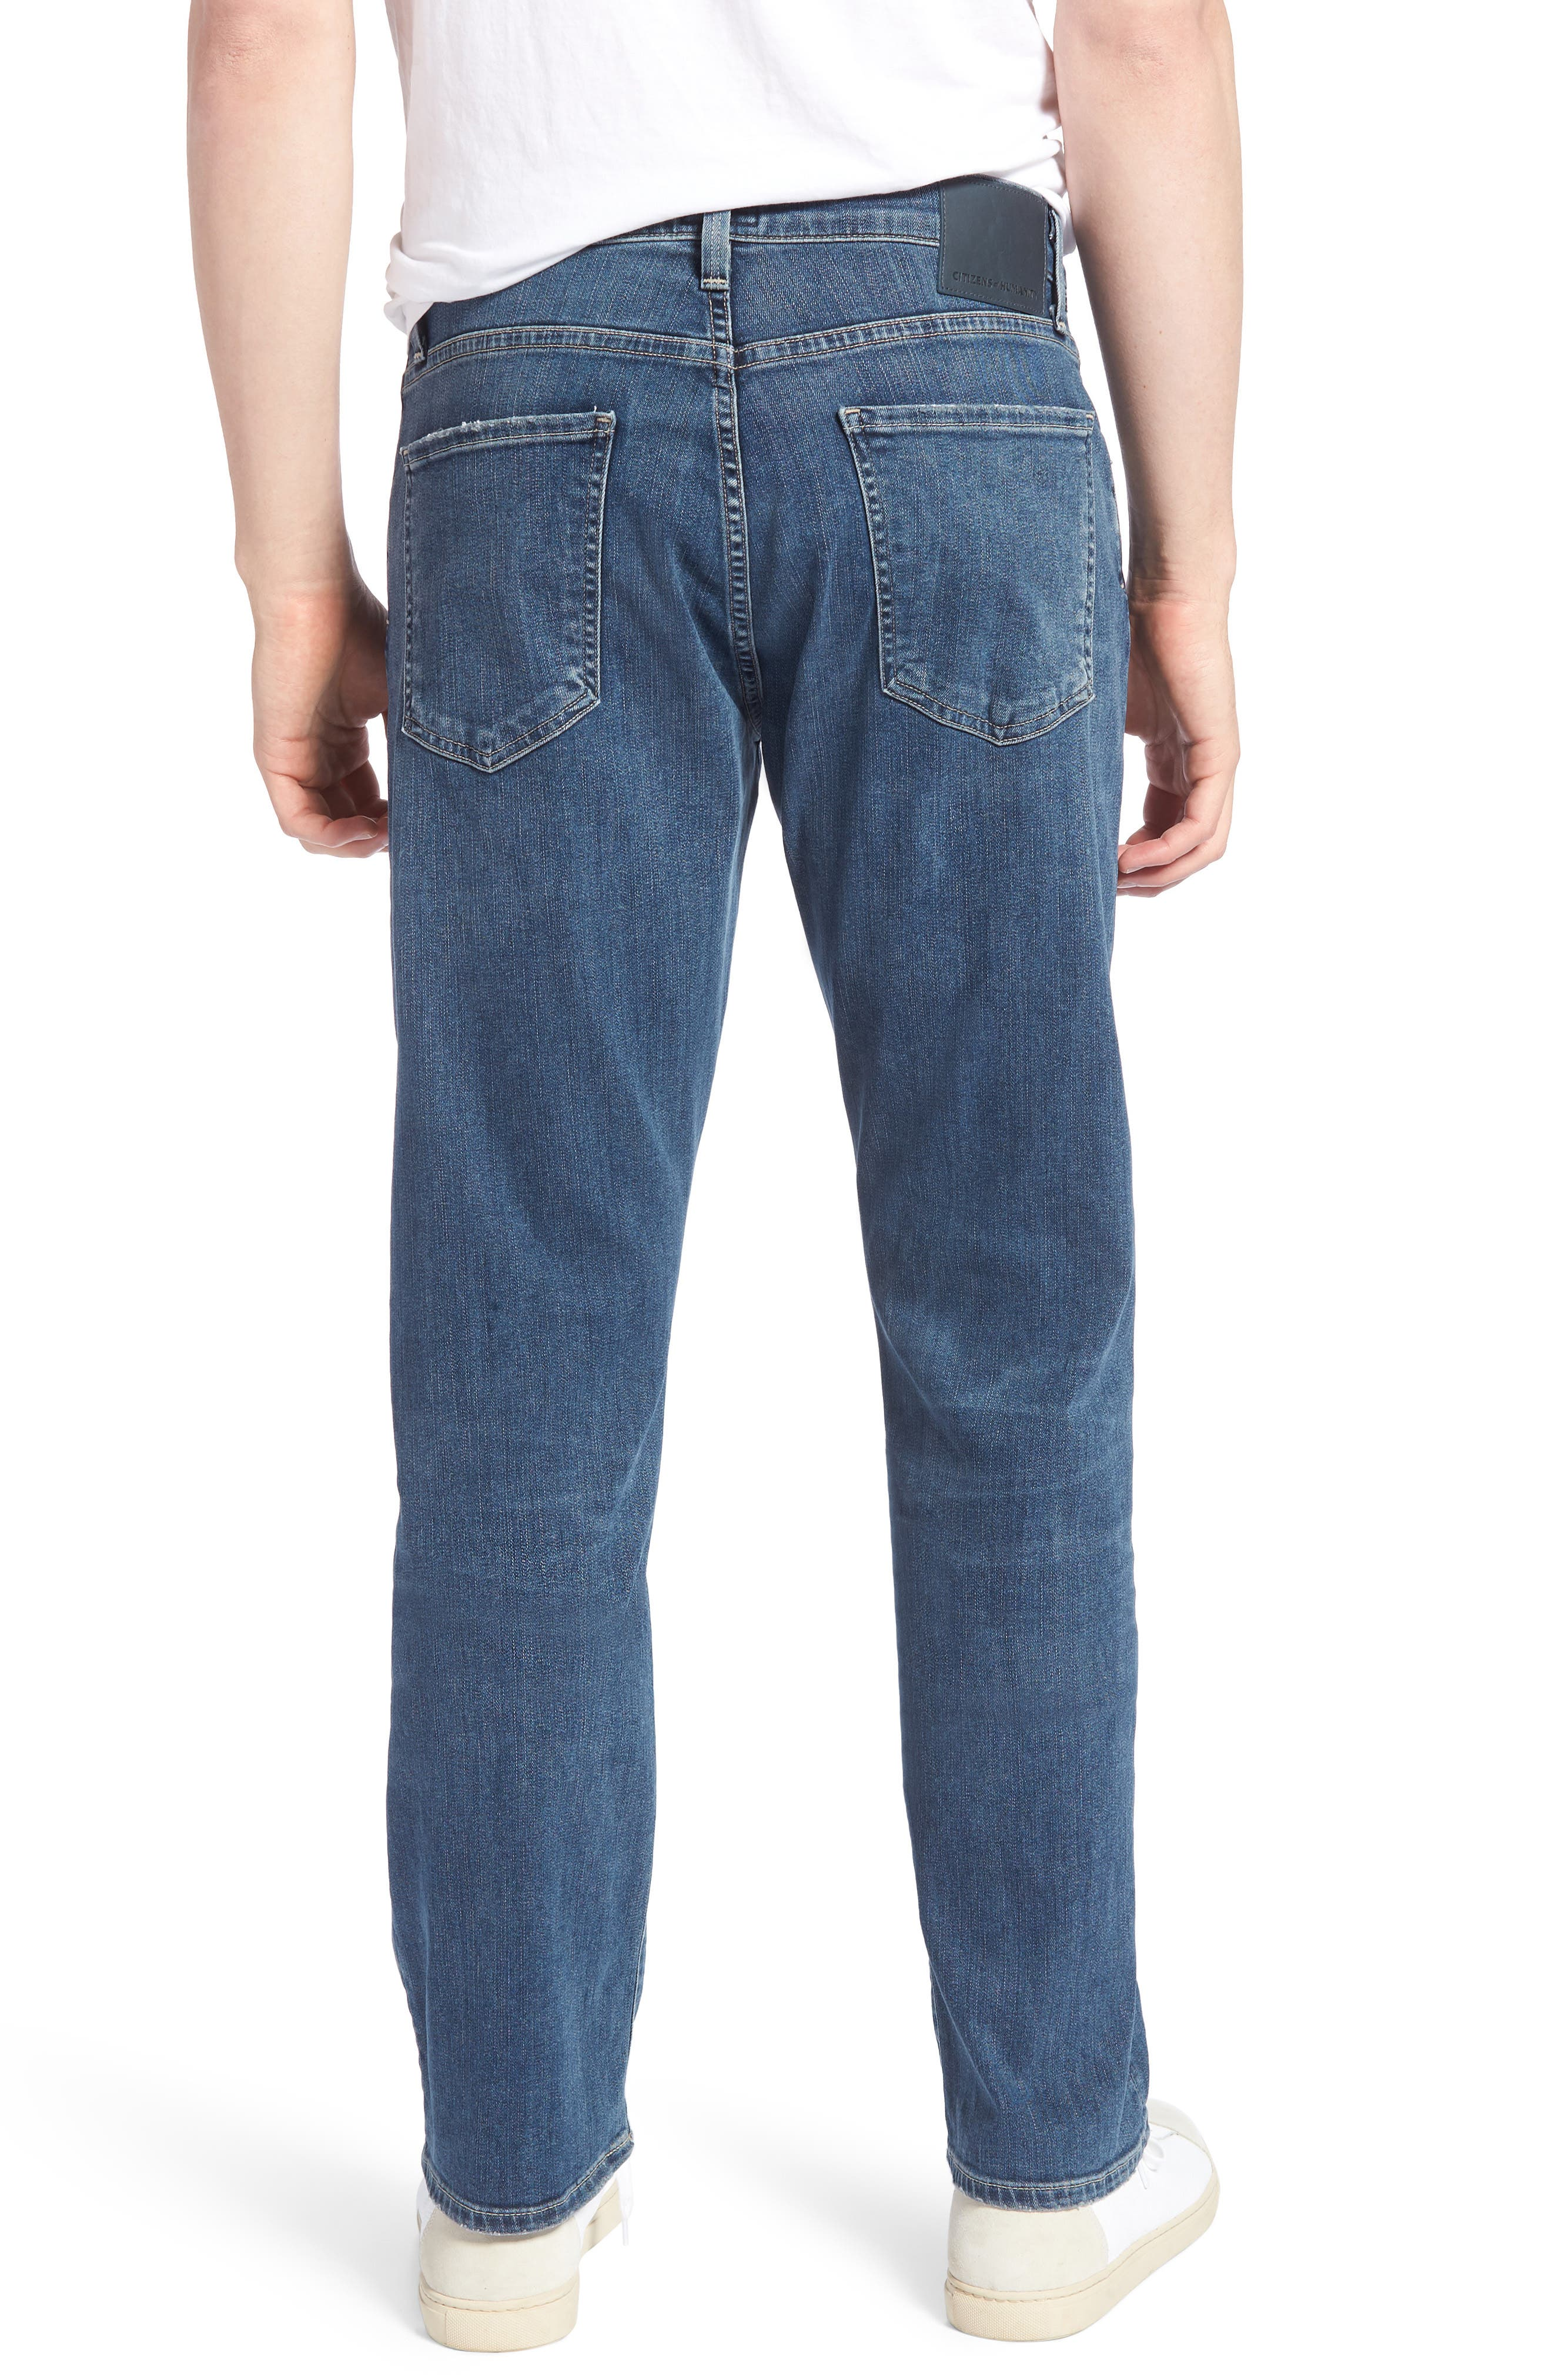 Gage Slim Straight Fit Jeans,                             Alternate thumbnail 2, color,                             427